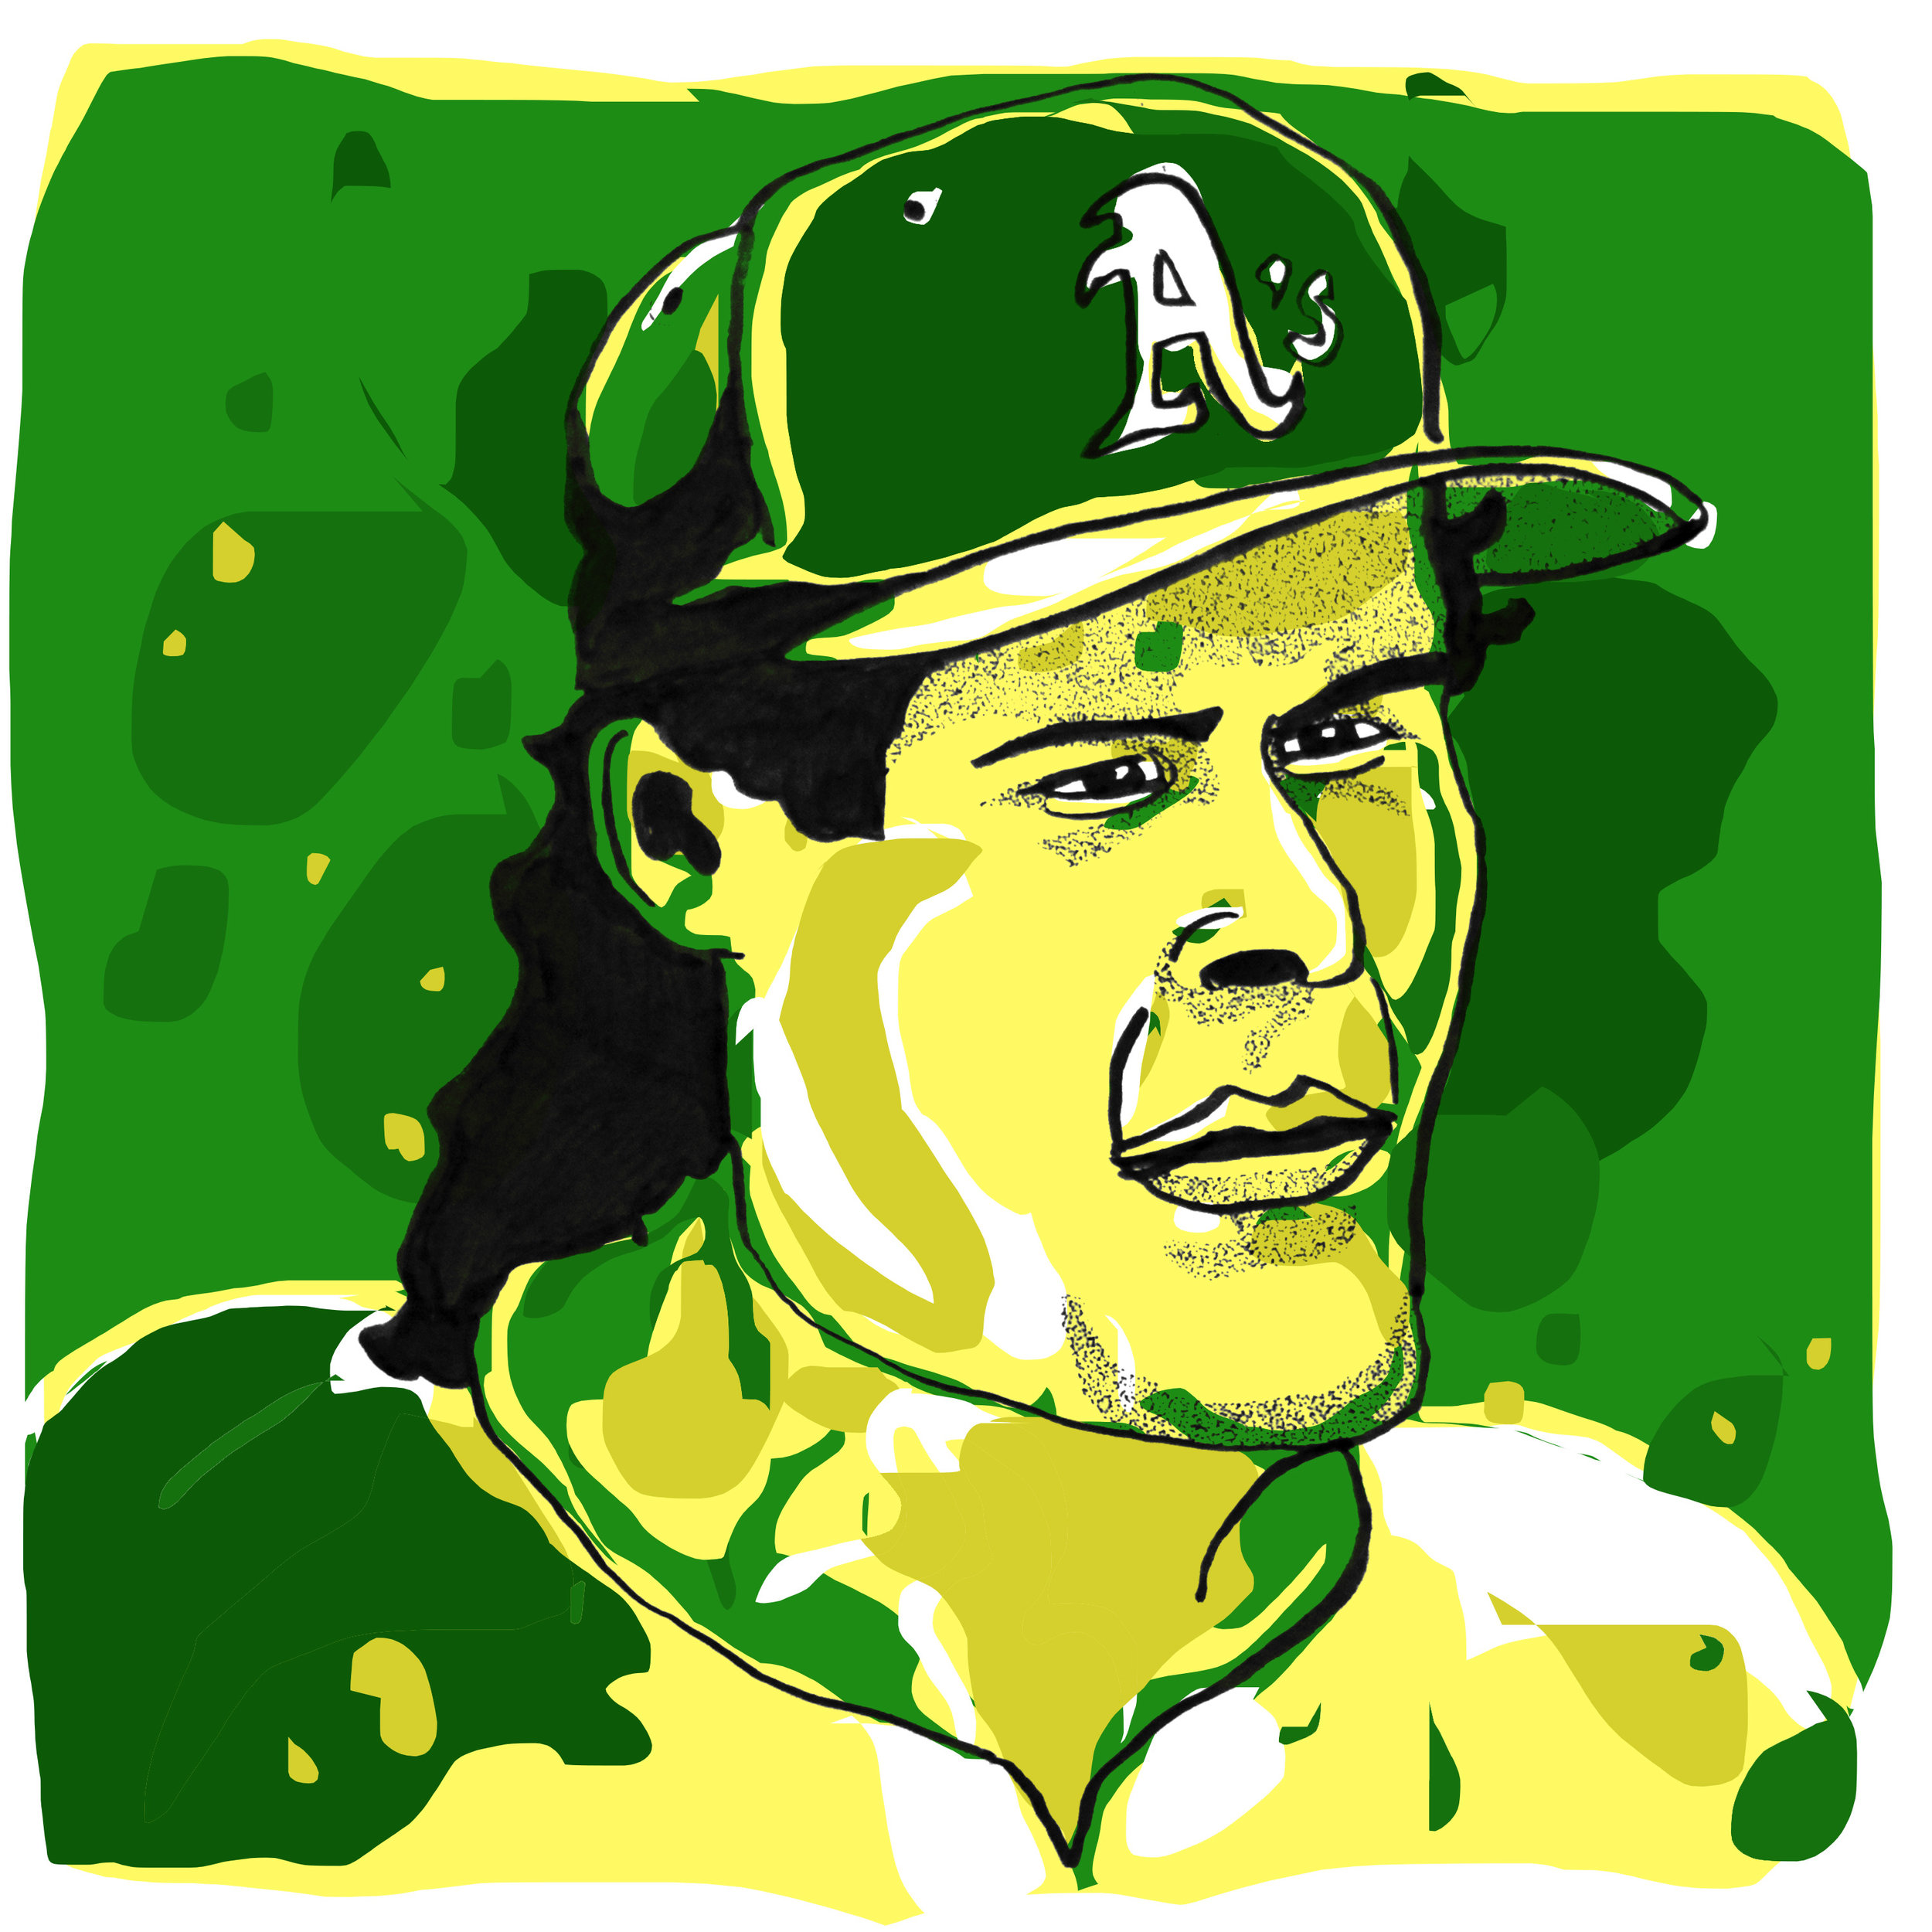 Jose Canseco by  @oyldraws